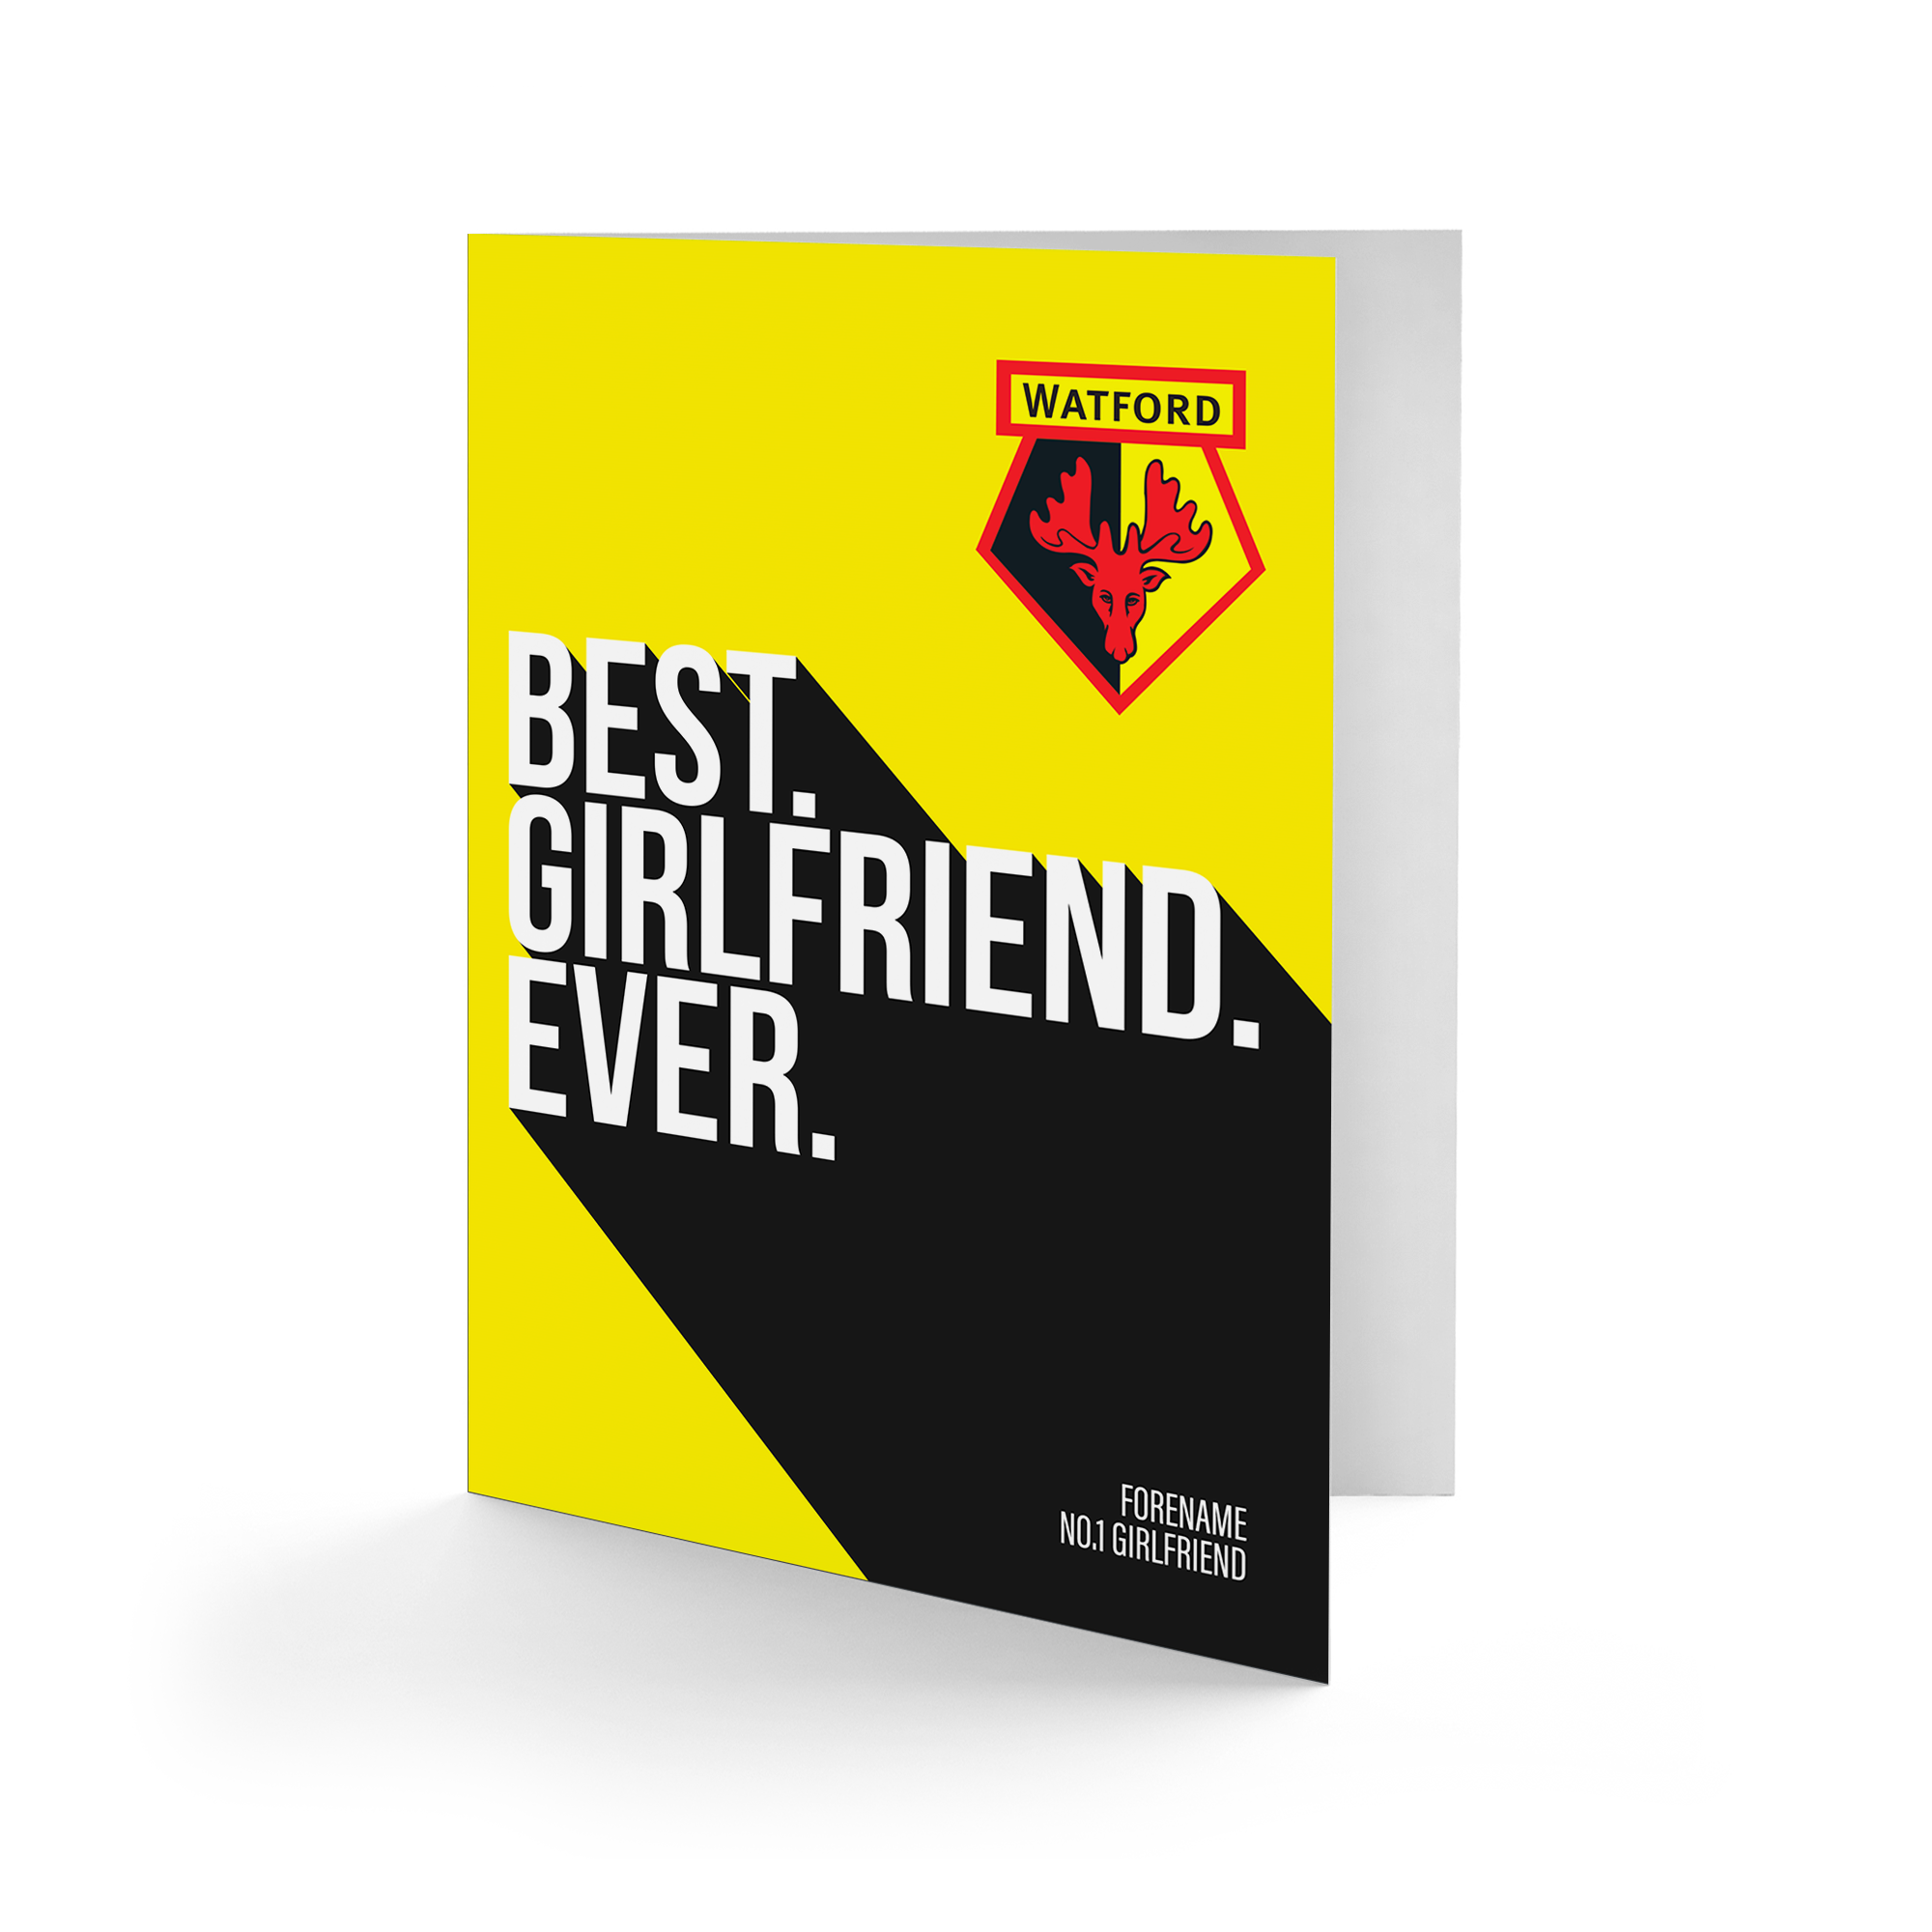 Watford FC Best Girlfriend Ever Card